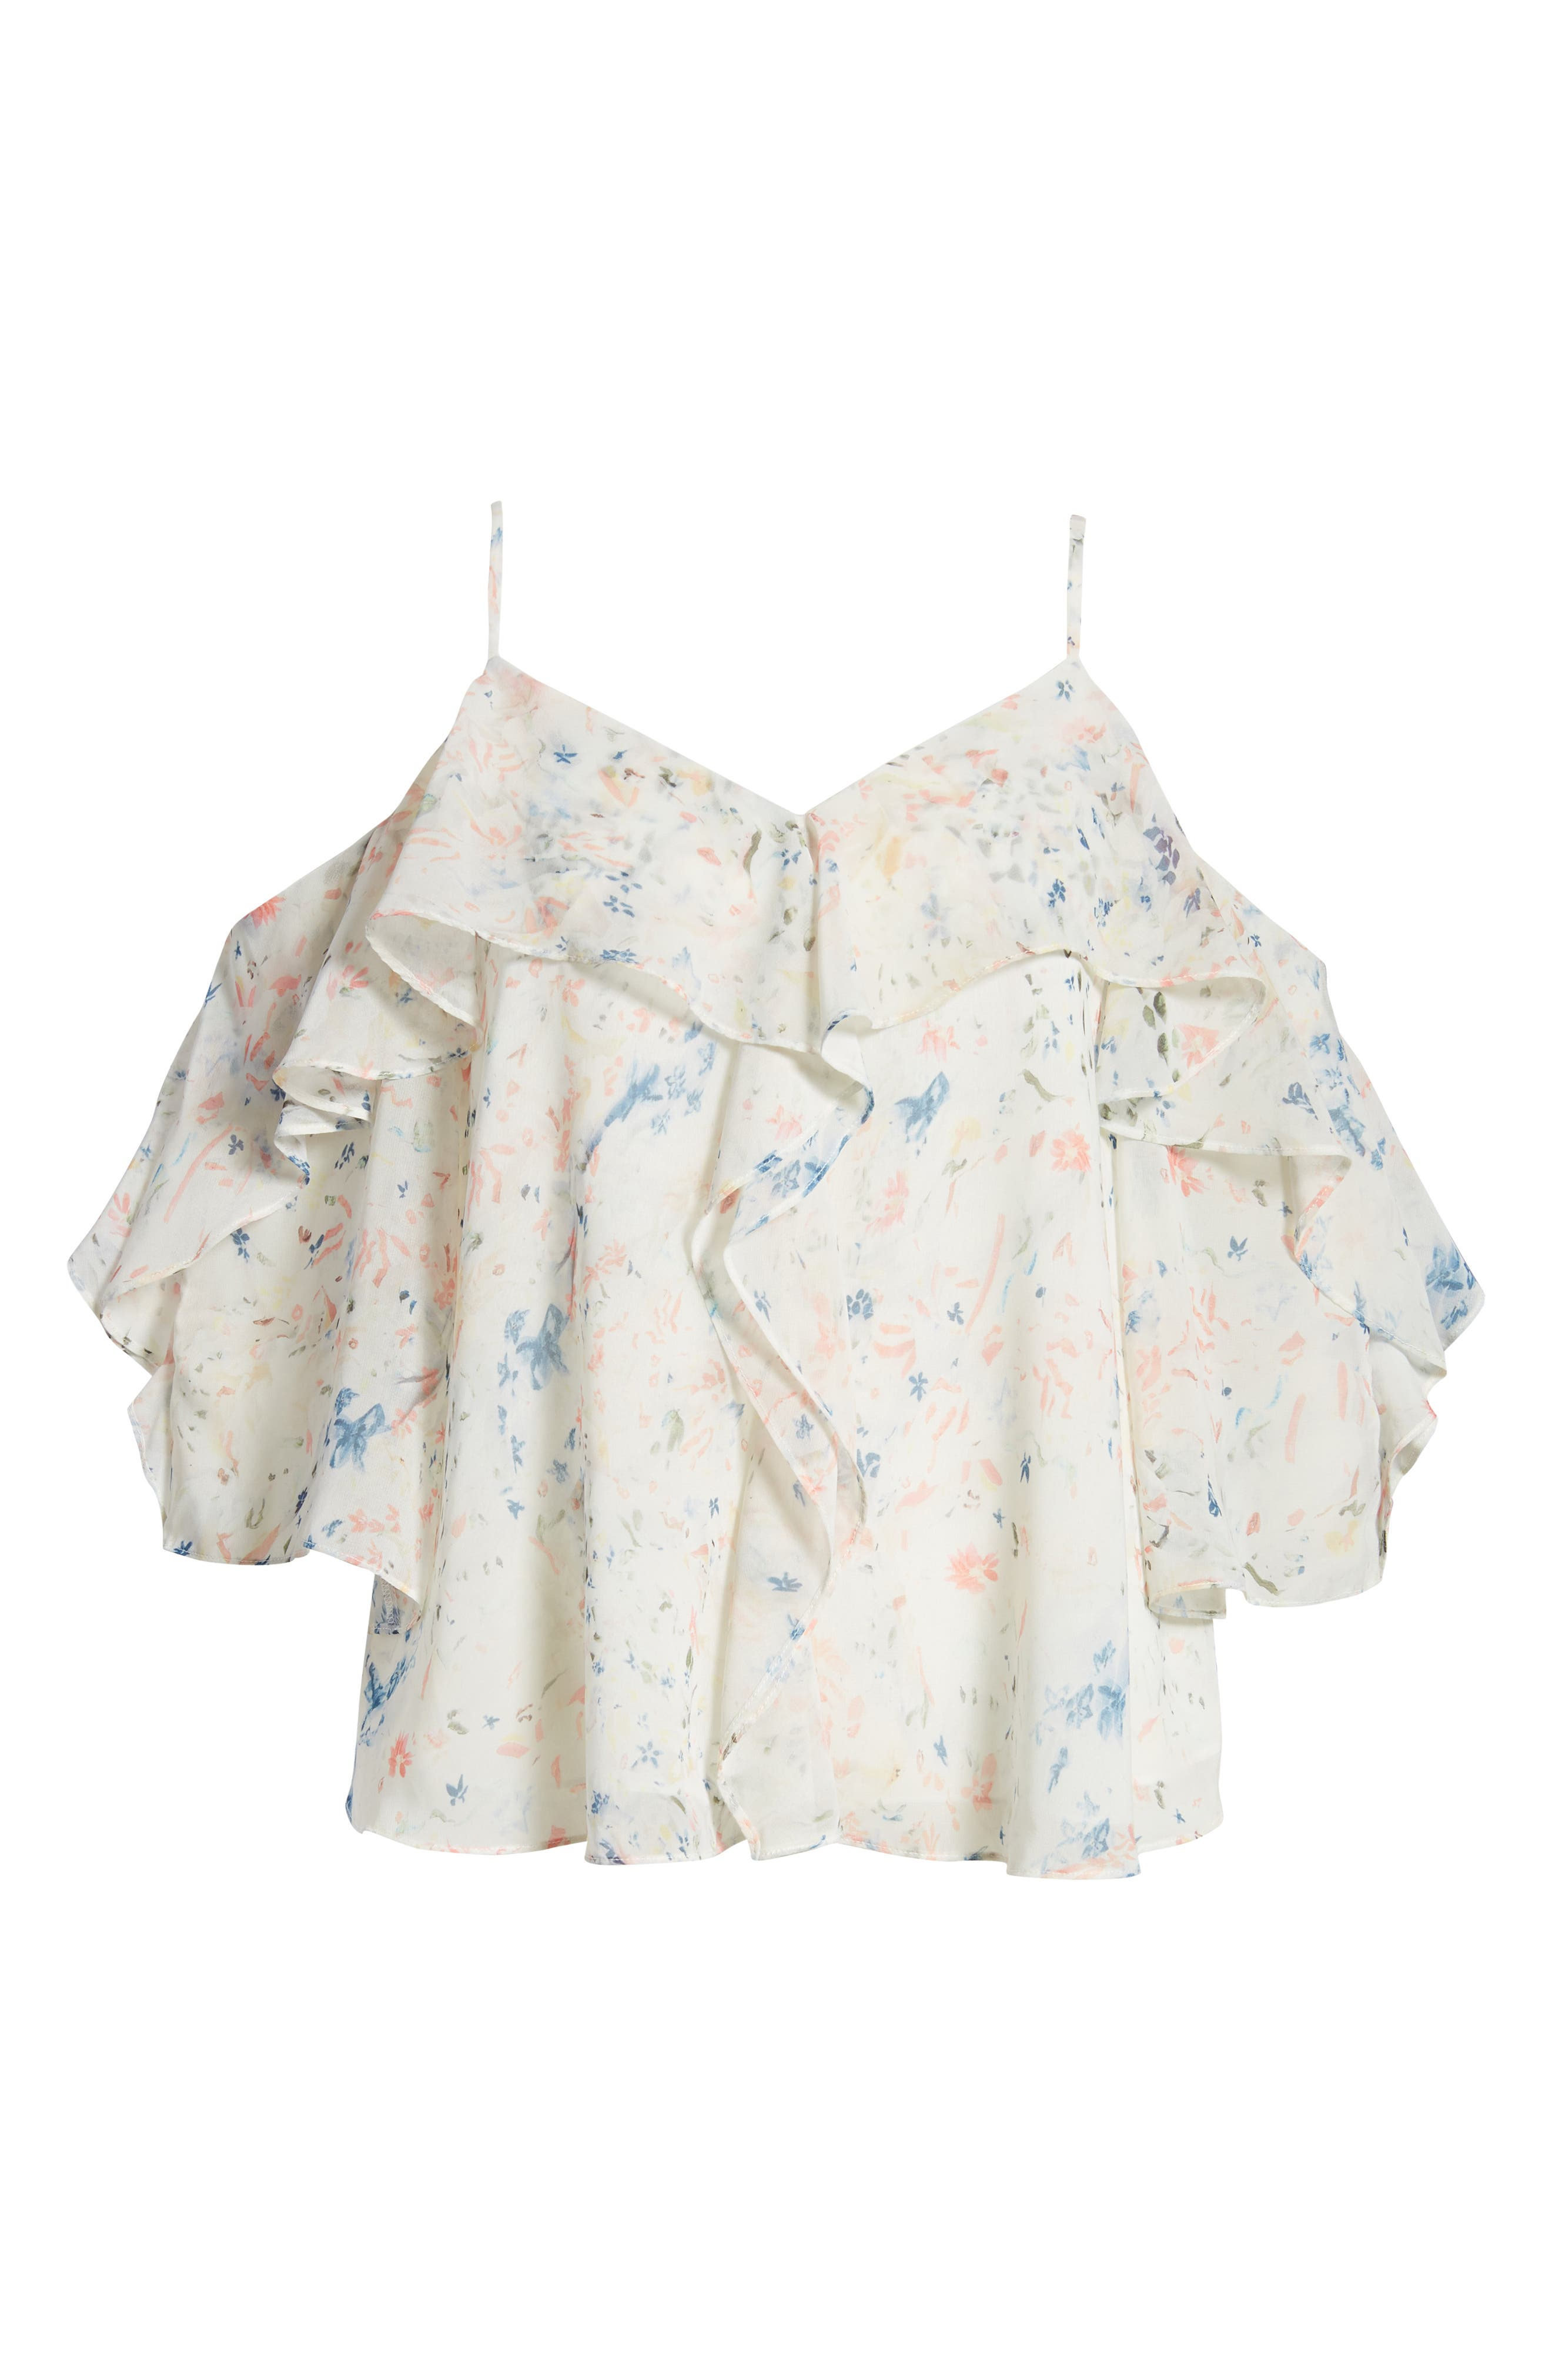 Jasmine Juni Top,                             Alternate thumbnail 6, color,                             Chalk White